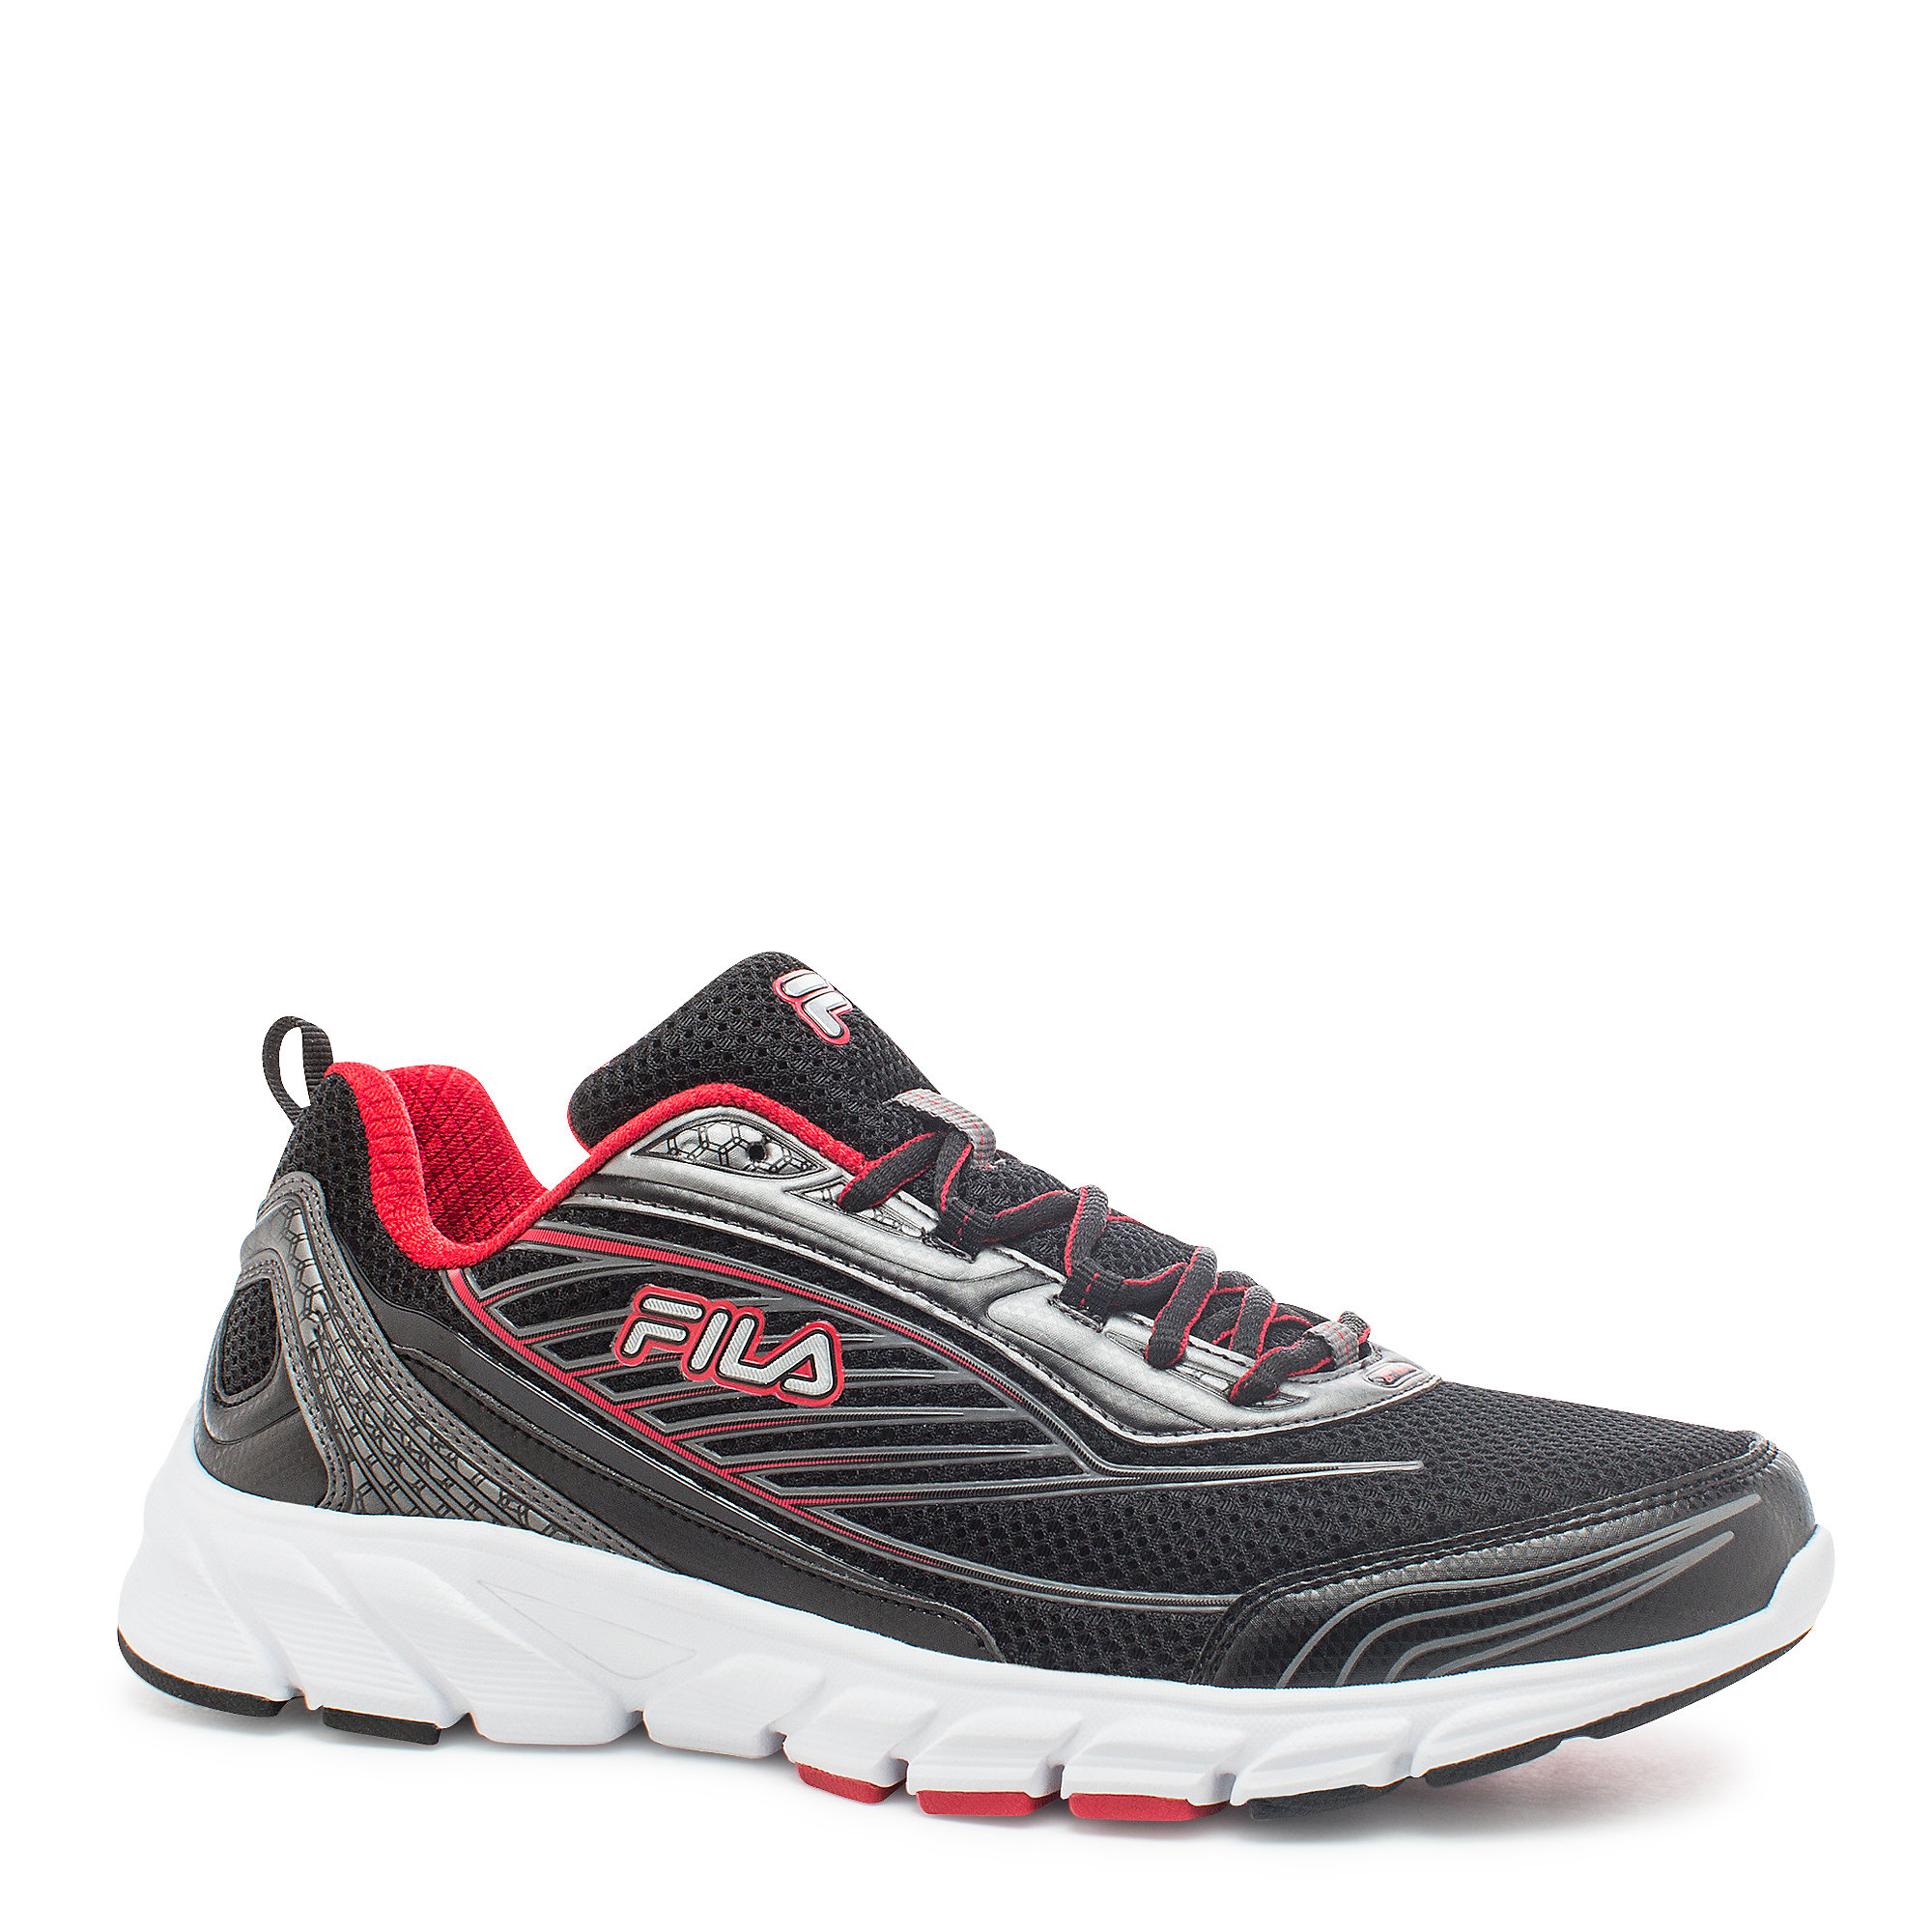 Fila Men's Forward 2 Running Shoe